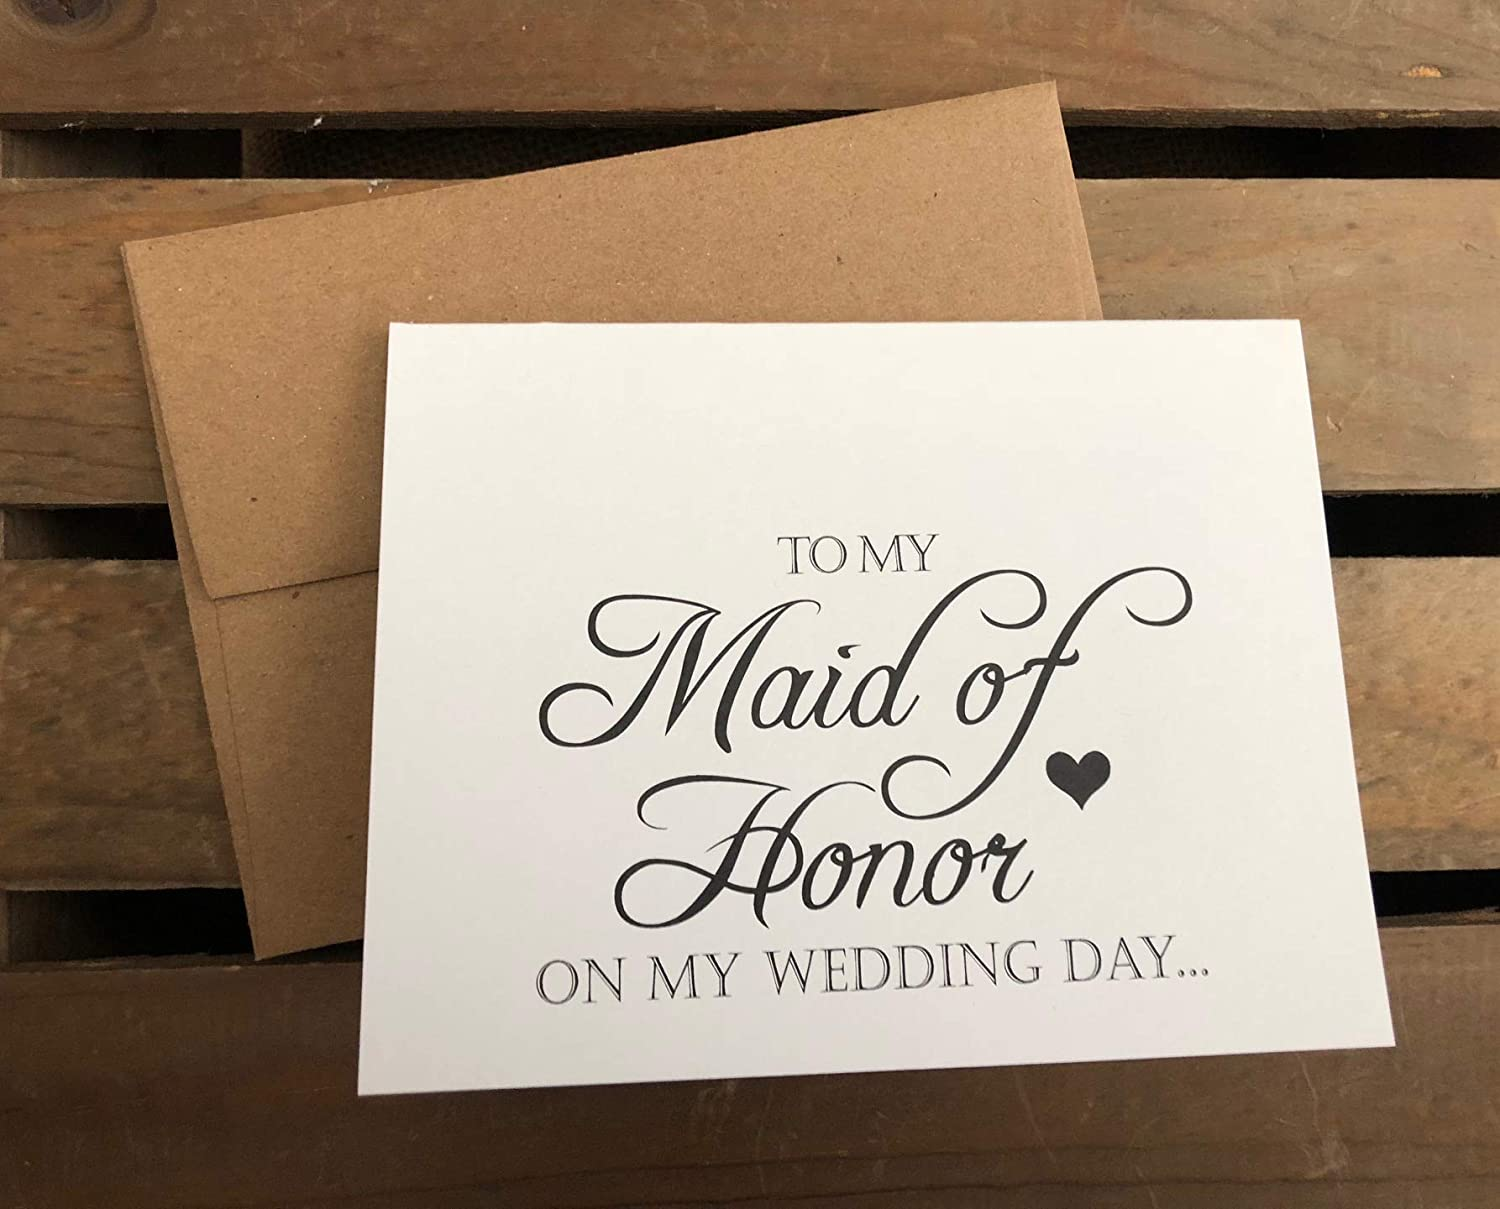 Eco Friendly RUSTIC To My MAID OF HONOR on my WEDDING Day Note Card White Recycled